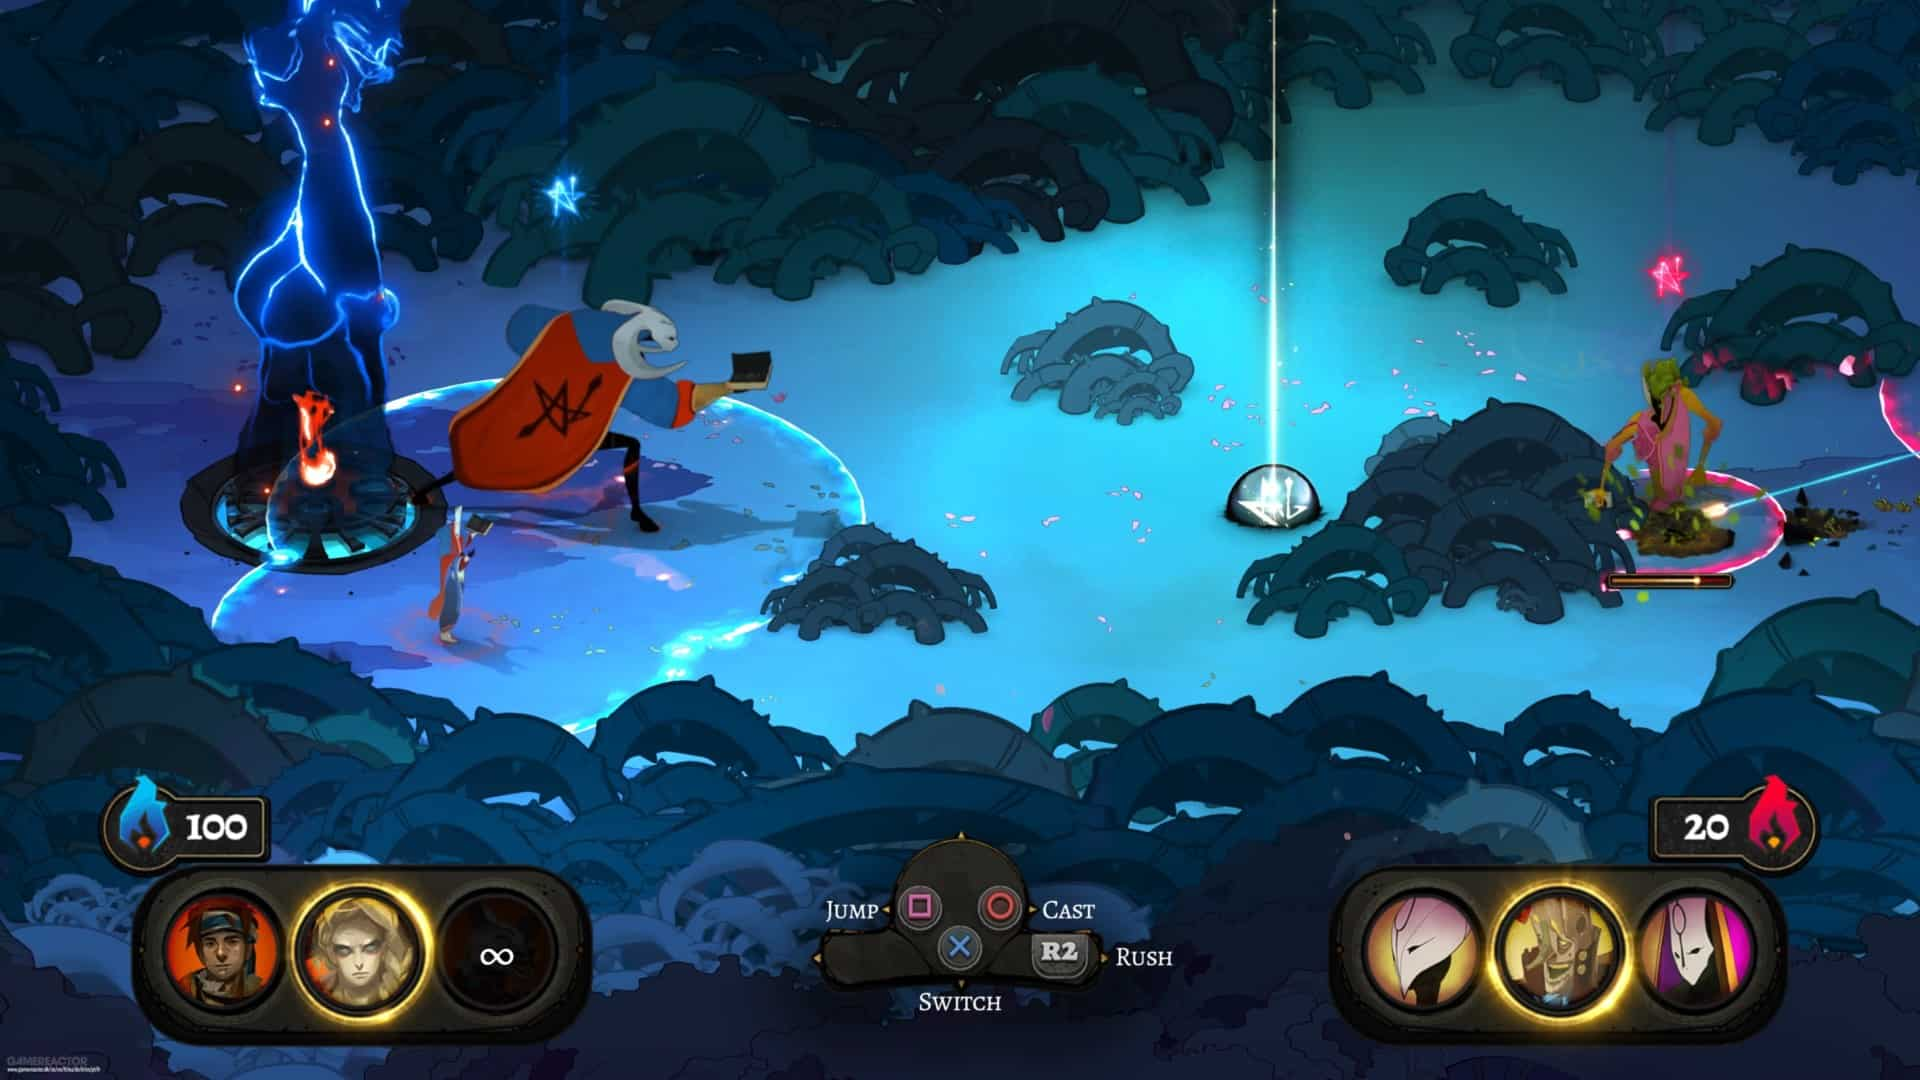 Pyre Supergiant Games offers exceptional and meaningful player choice in its game mechanics